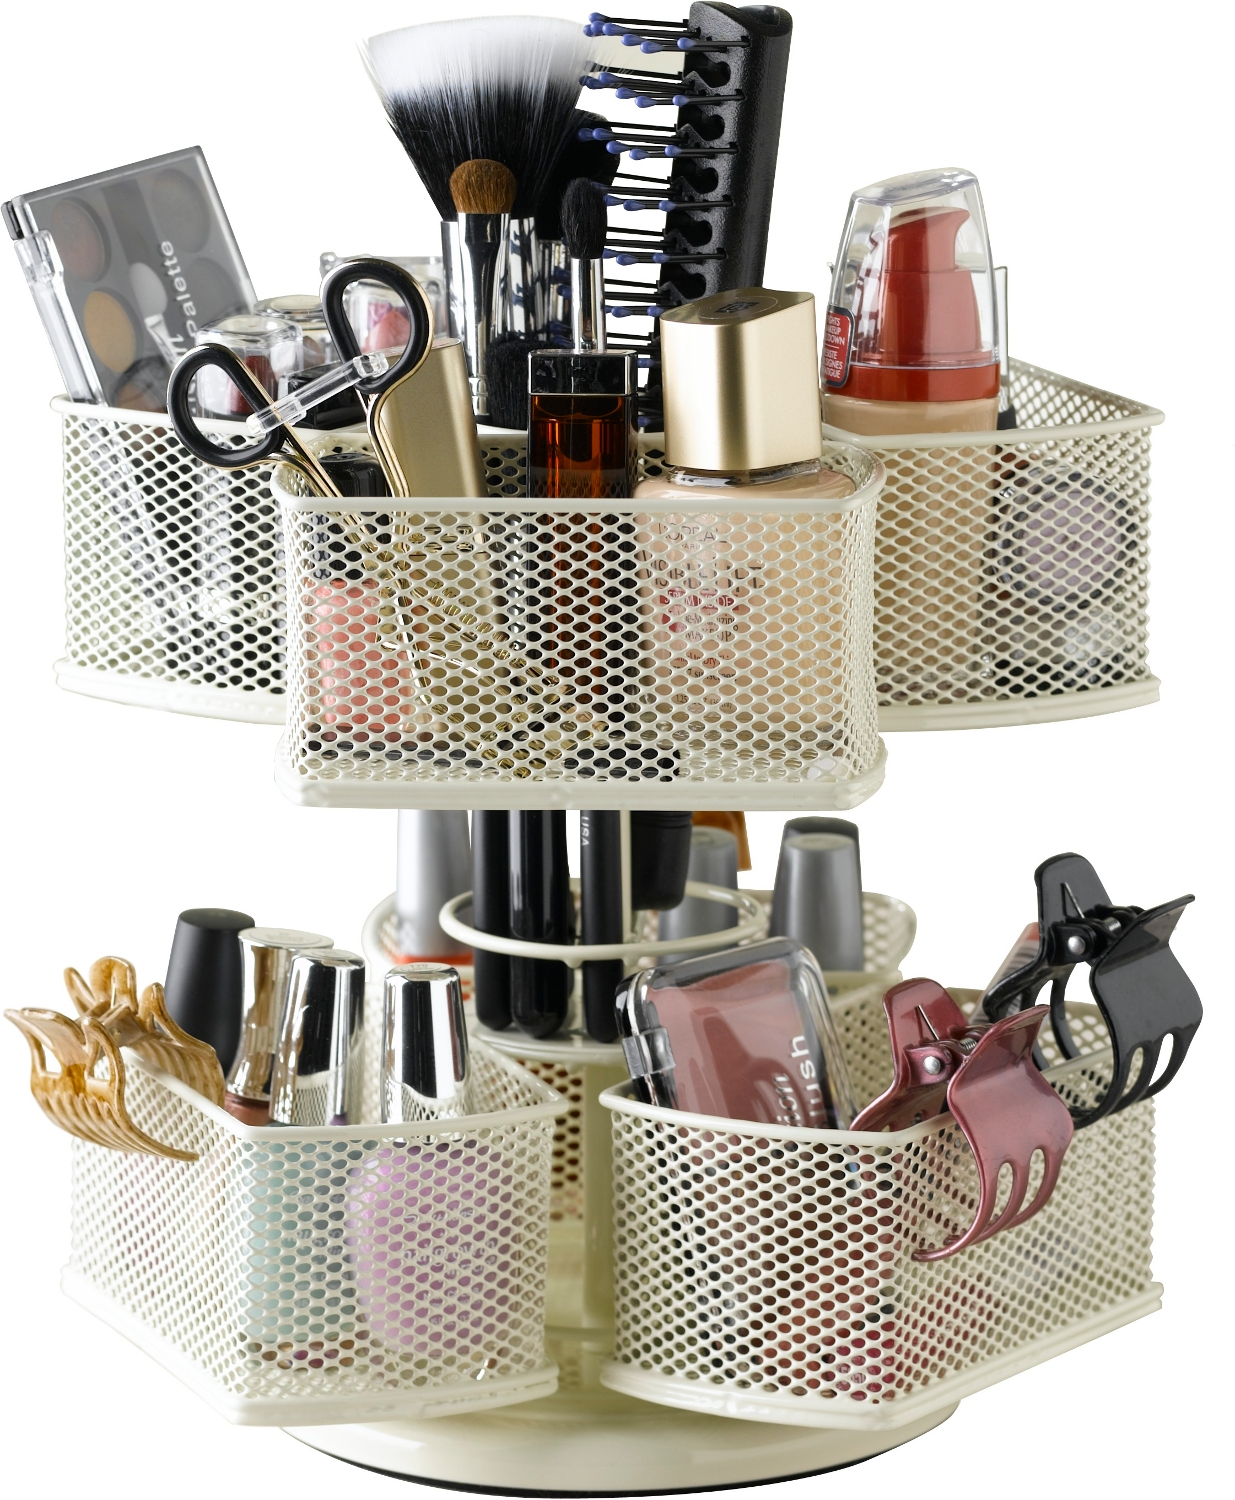 Nifty Home Products Cream Make-Up Carousel